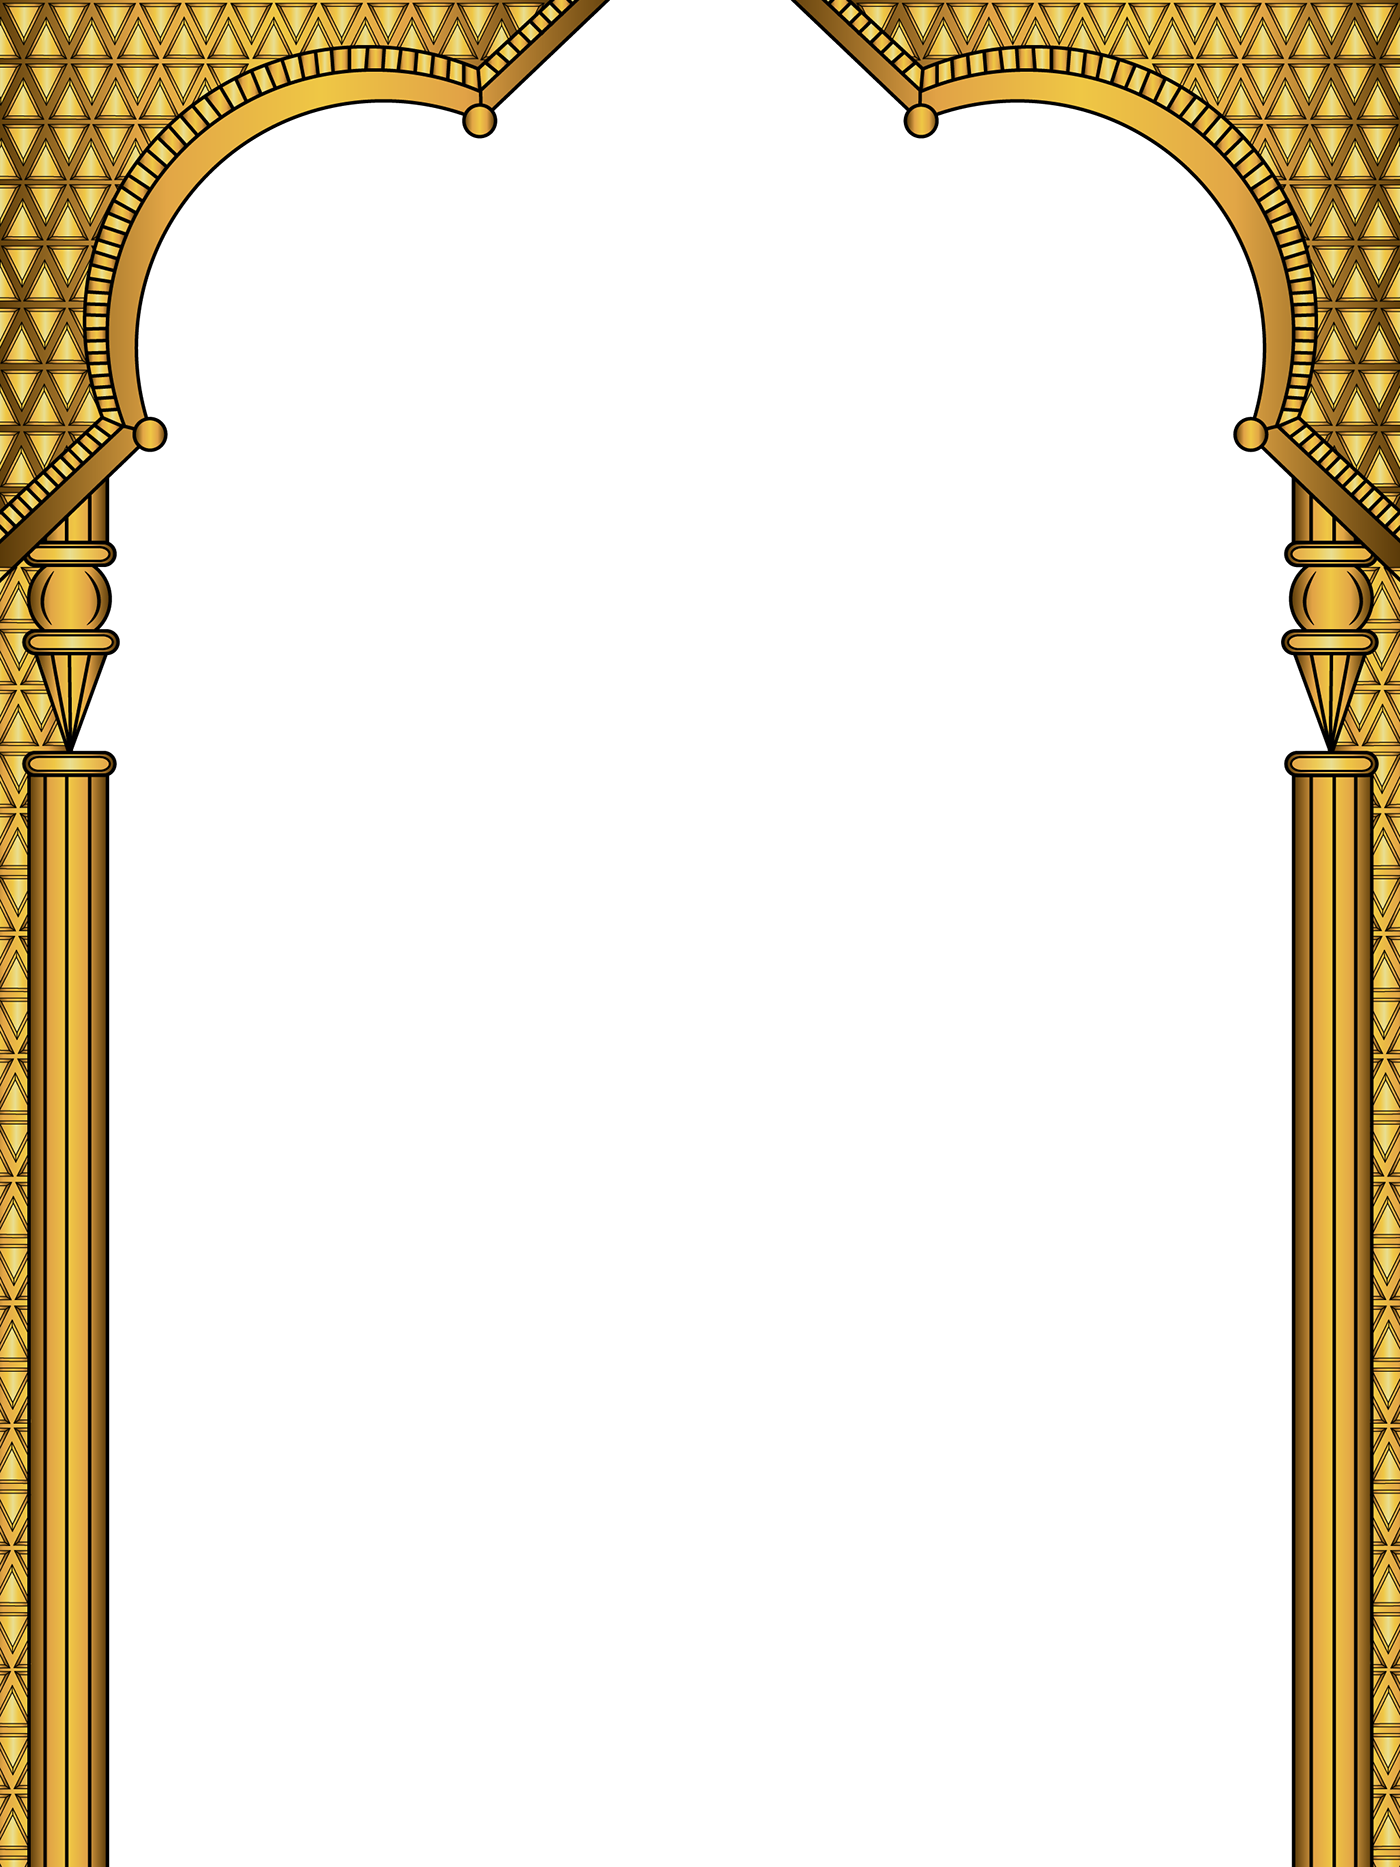 Arch png 2 » PNG Image.